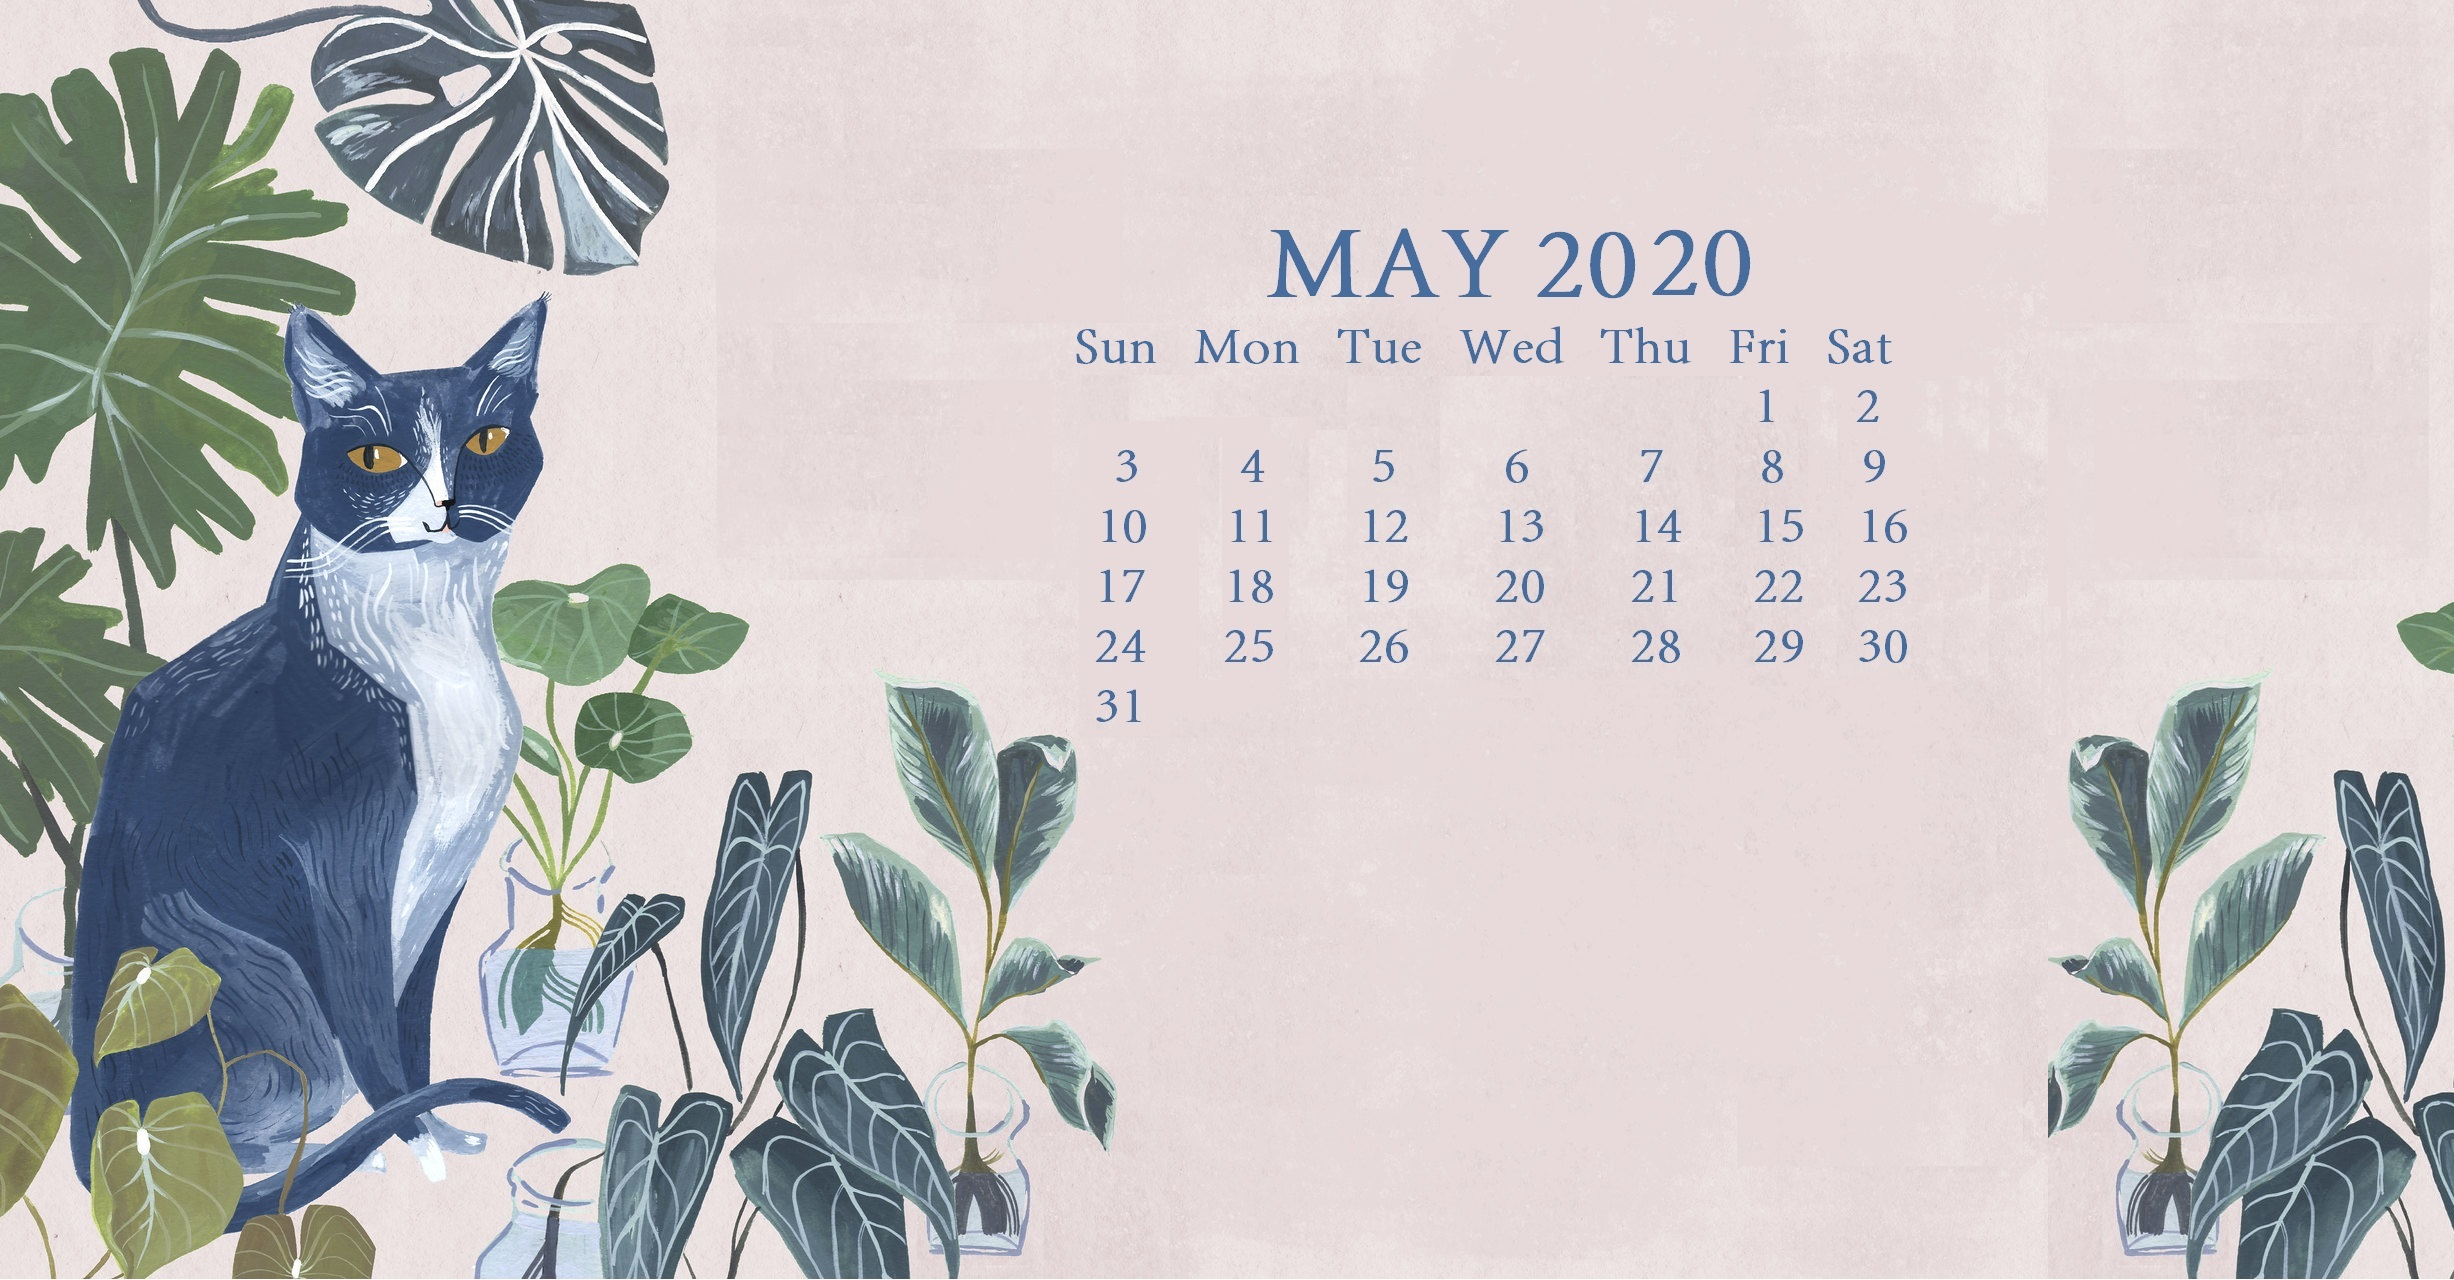 May 2020 Calendar Wallpapers   Top May 2020 Calendar 2454x1280